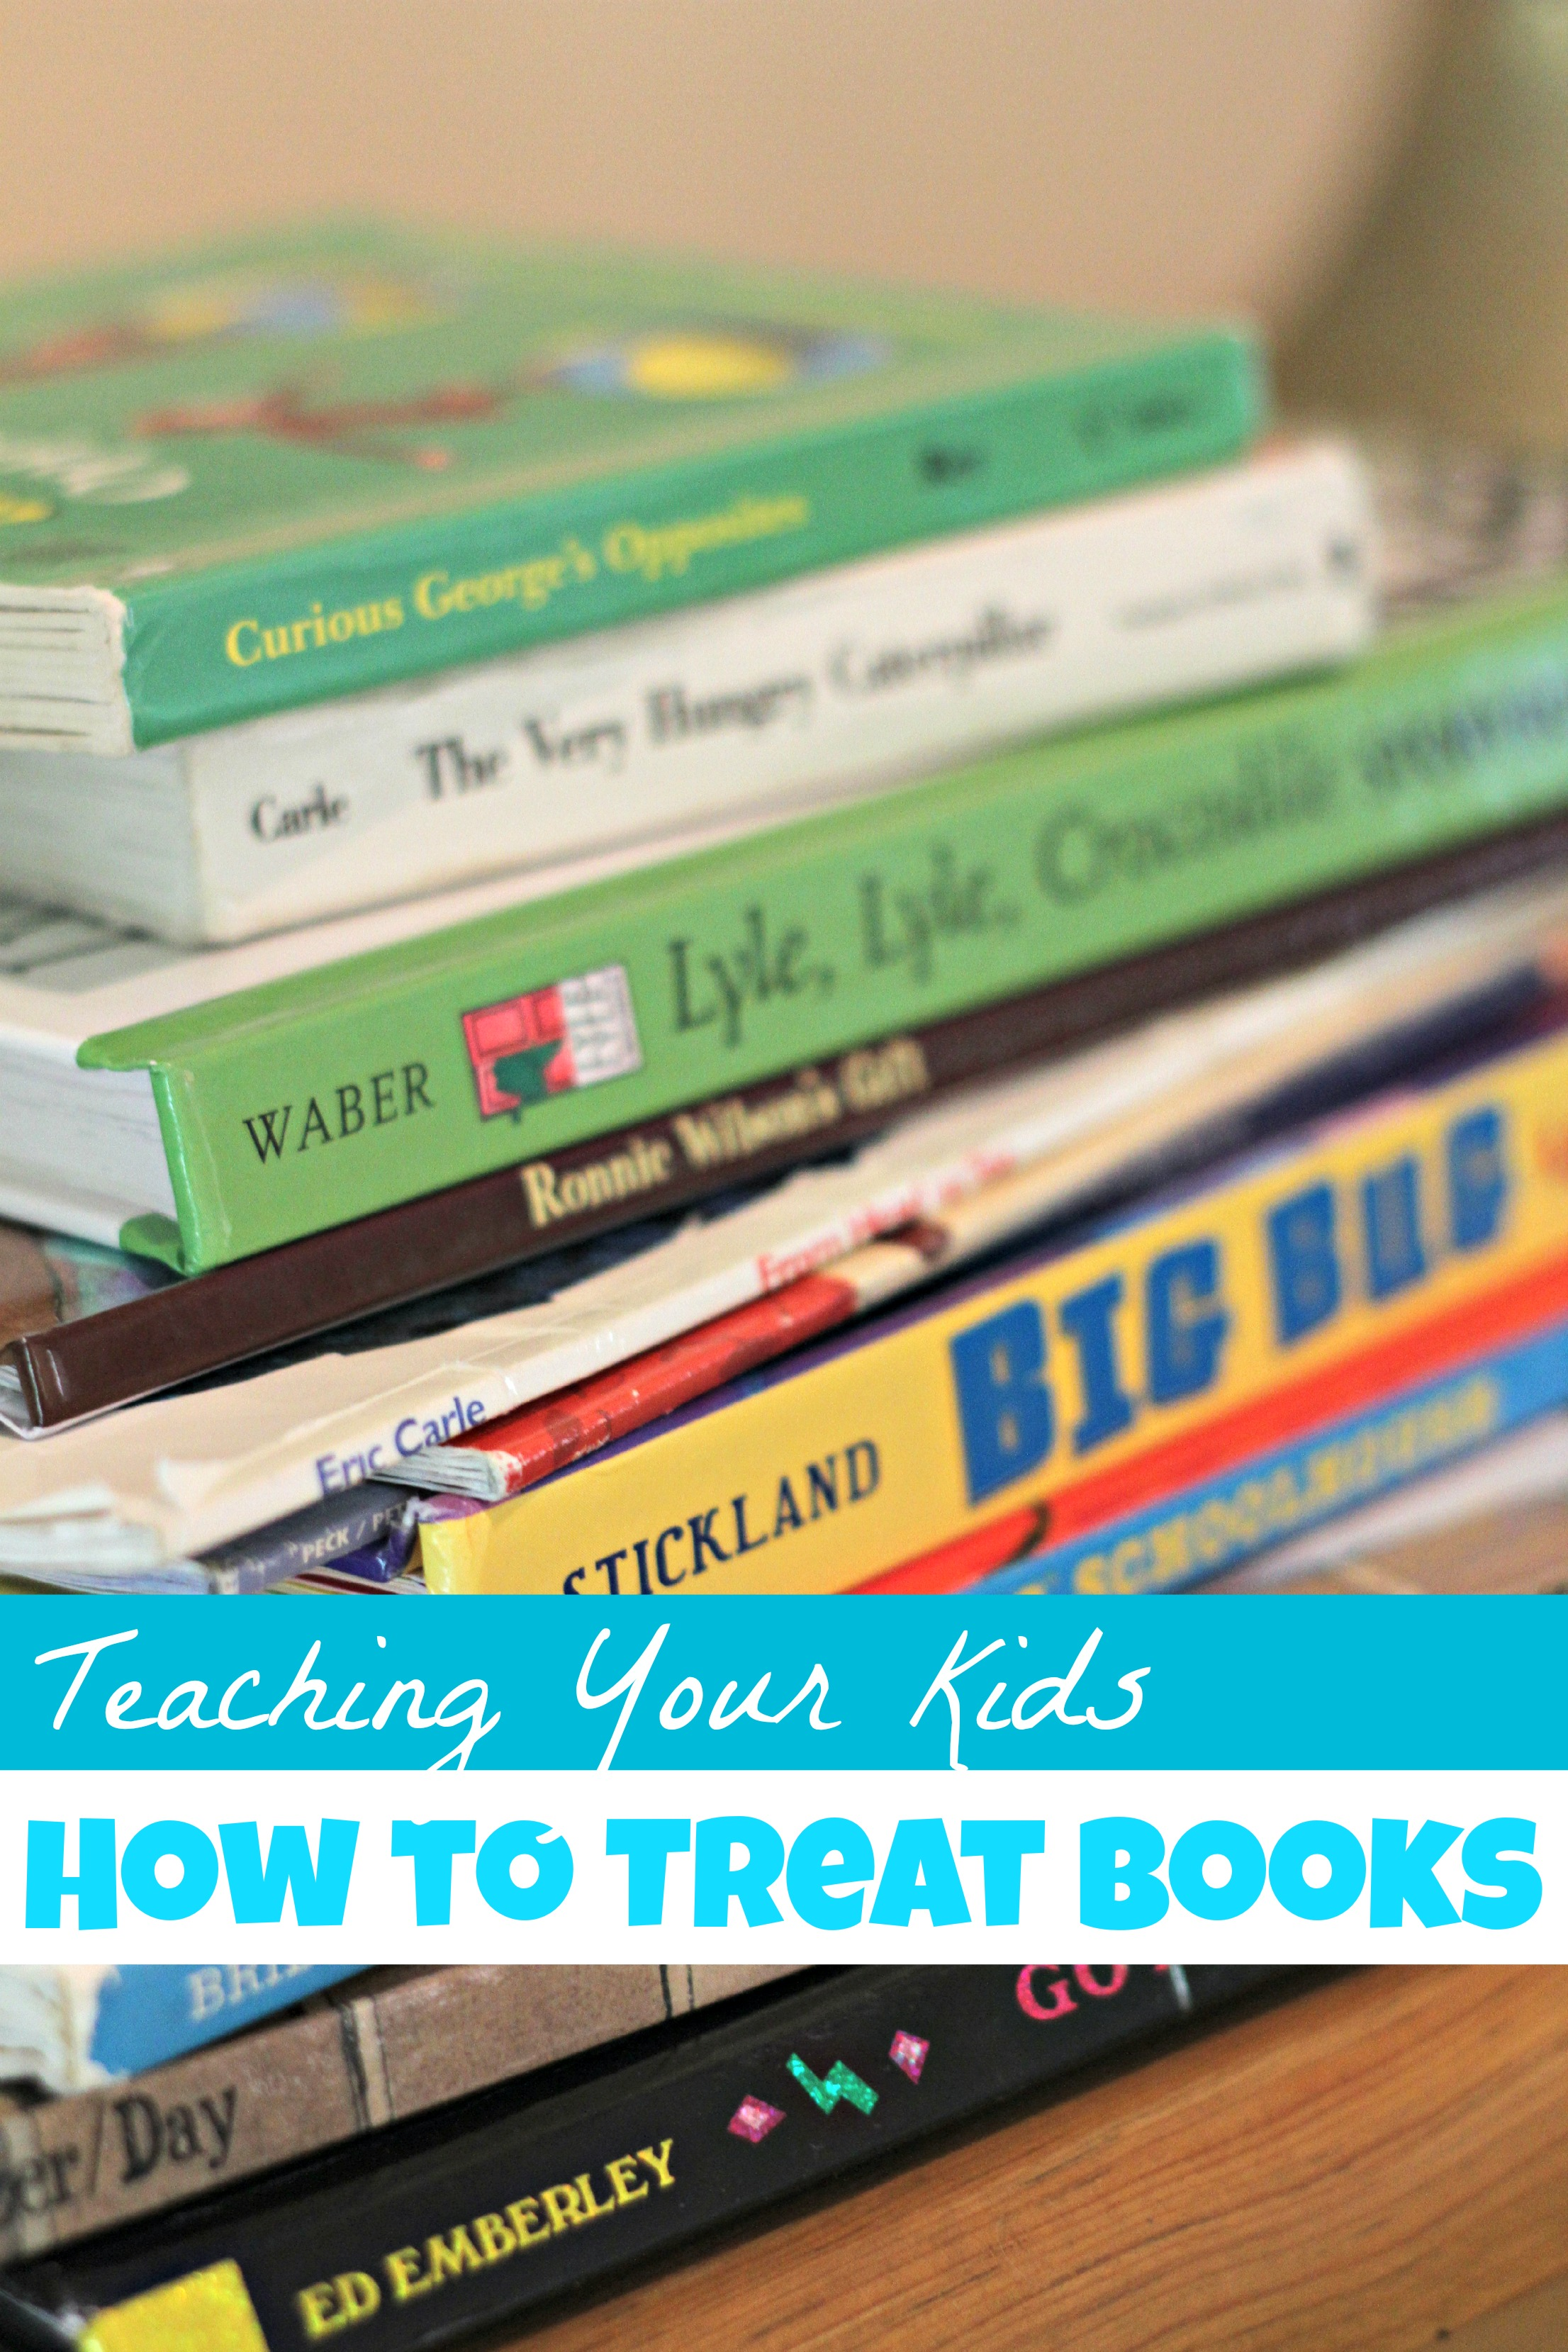 Teaching Your Kids How to Treat Books - I Can Teach My Child!